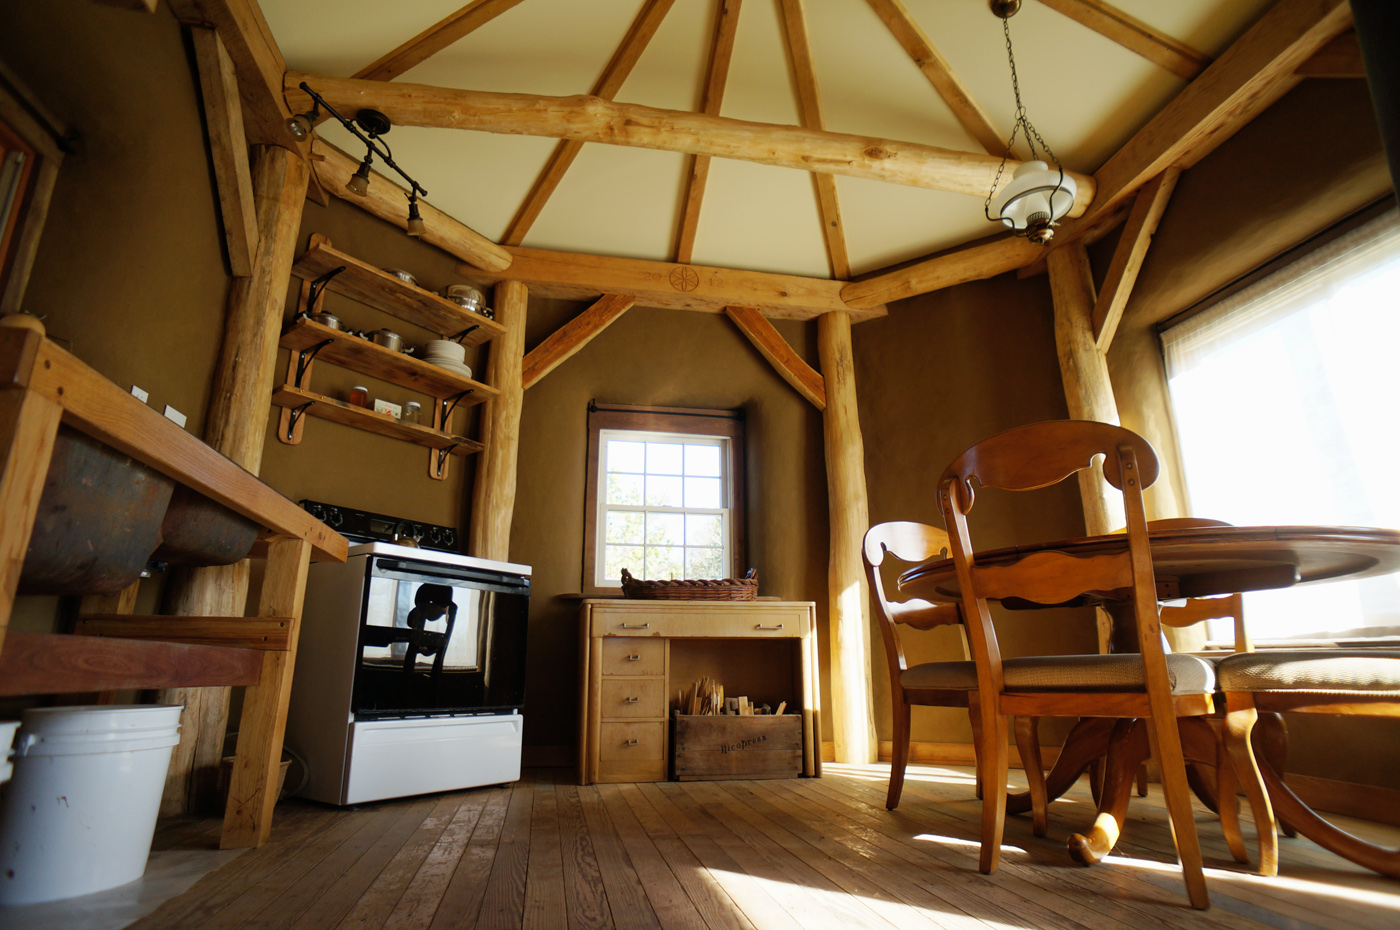 Timber frame straw bale house for sale natural home for Timber frame home interiors